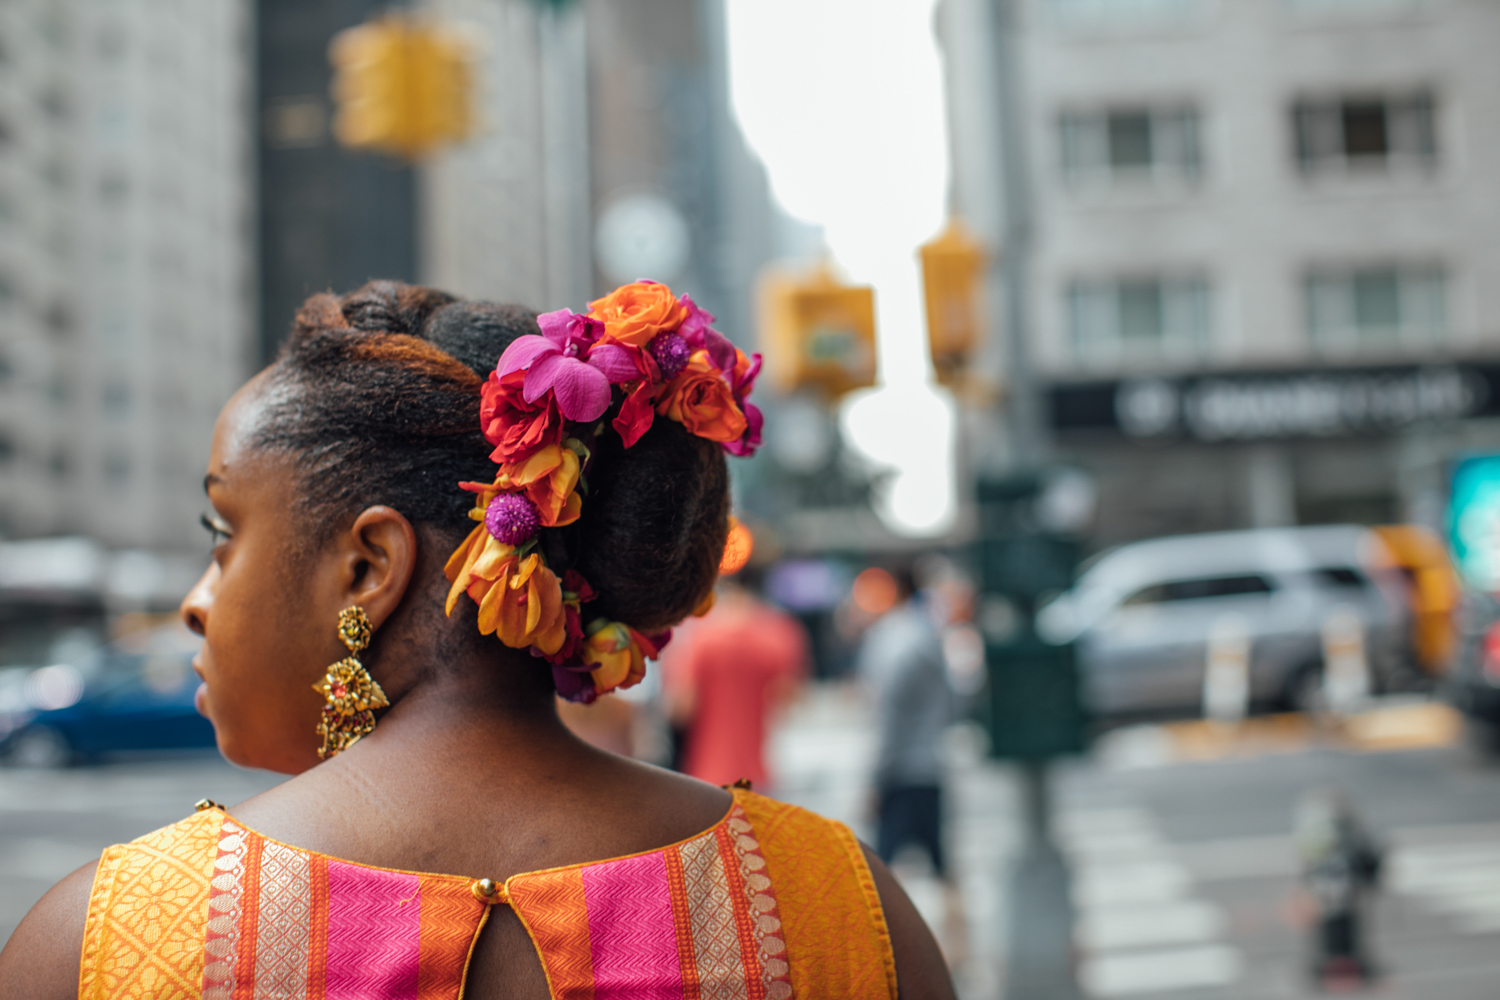 Portrait of the bride with colorful fresh flowers in her hair.